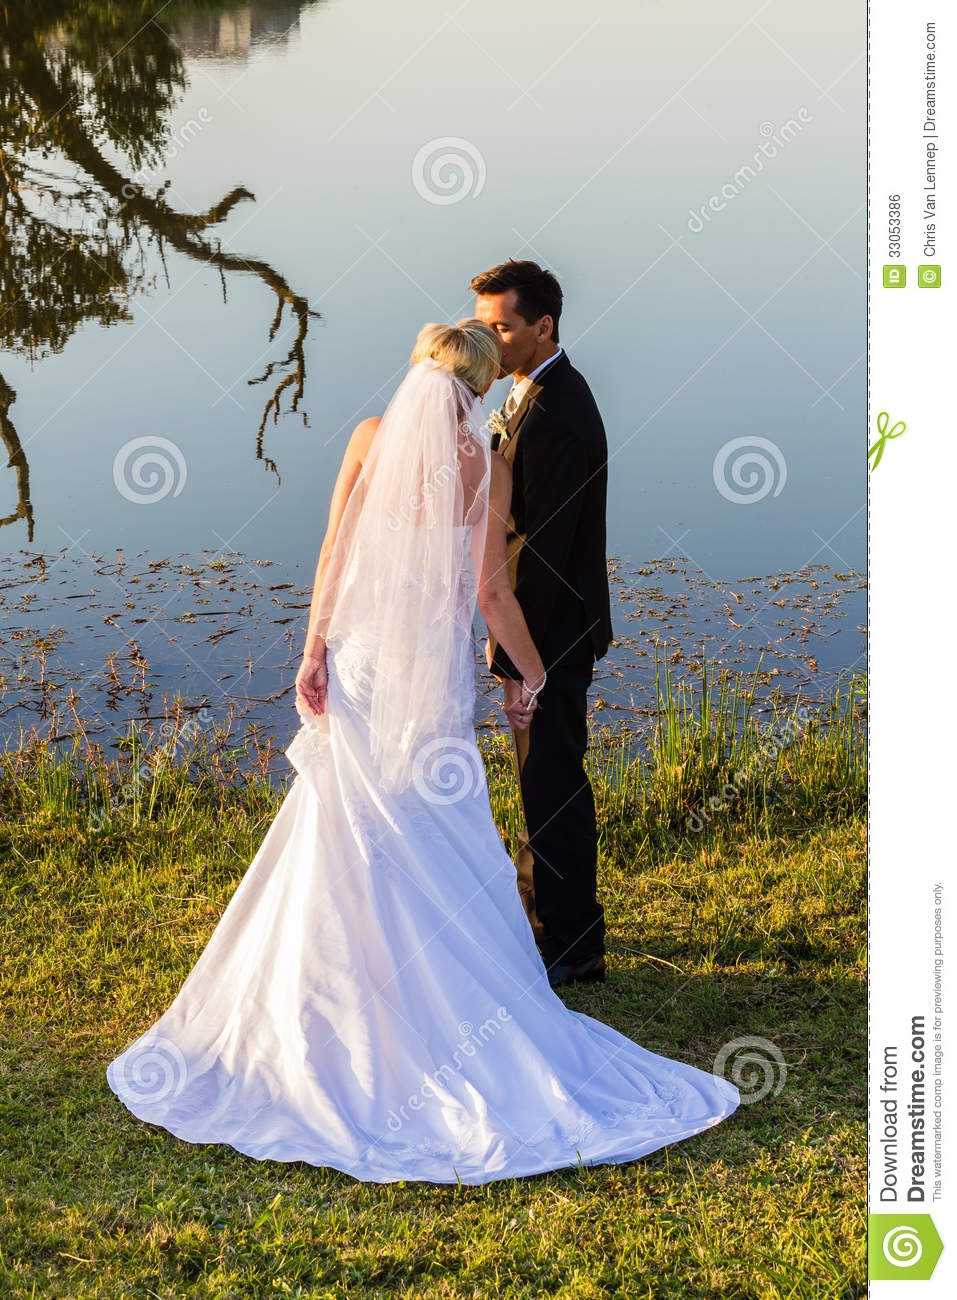 Wedding Bride Groom Romantic Kiss Royalty Free Stock Image